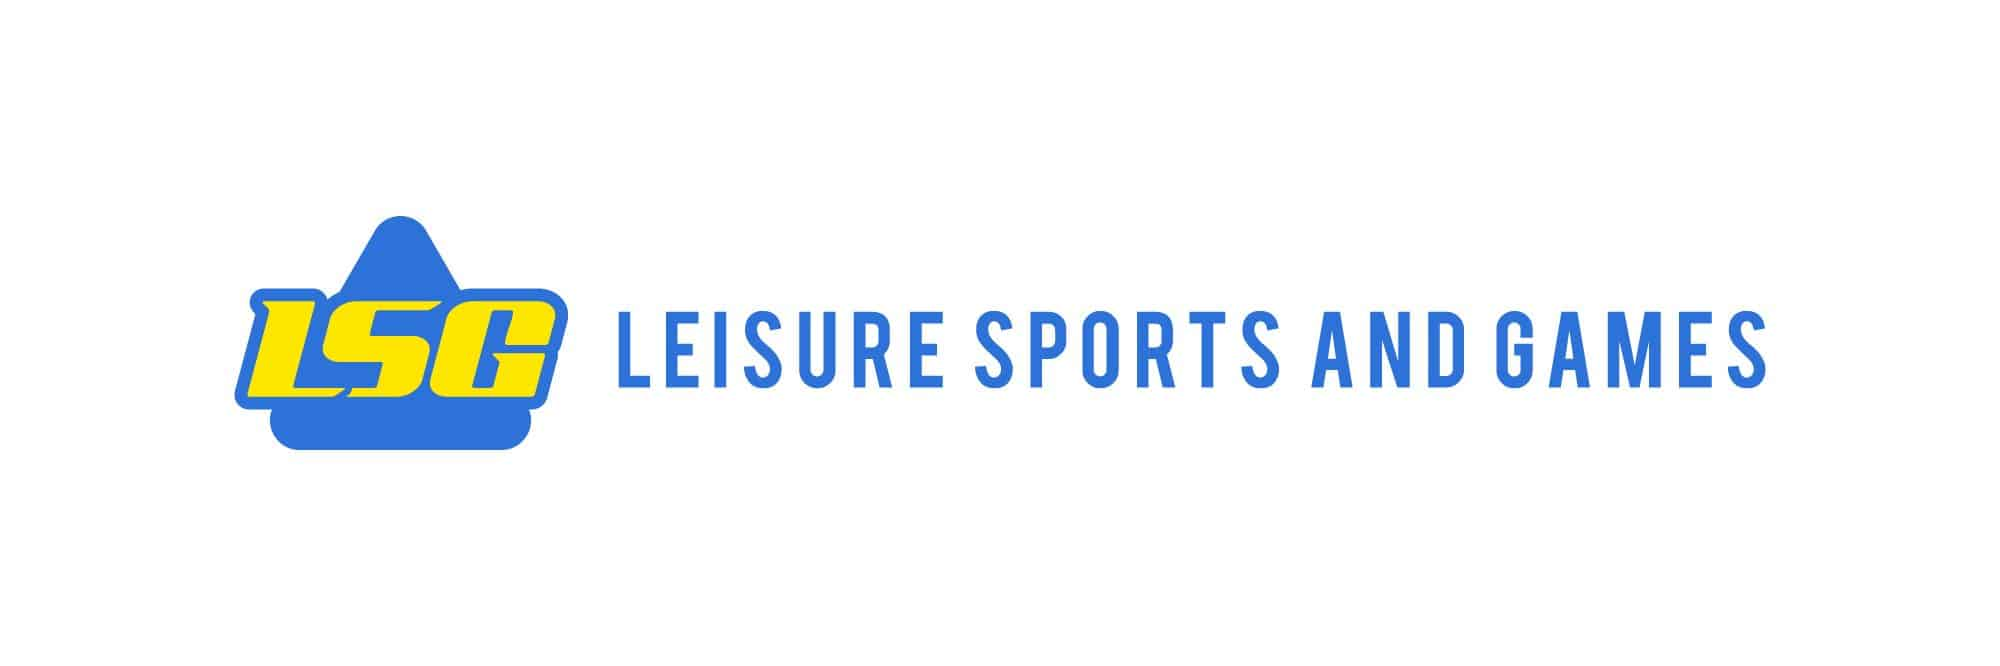 Leisure Sports and Games